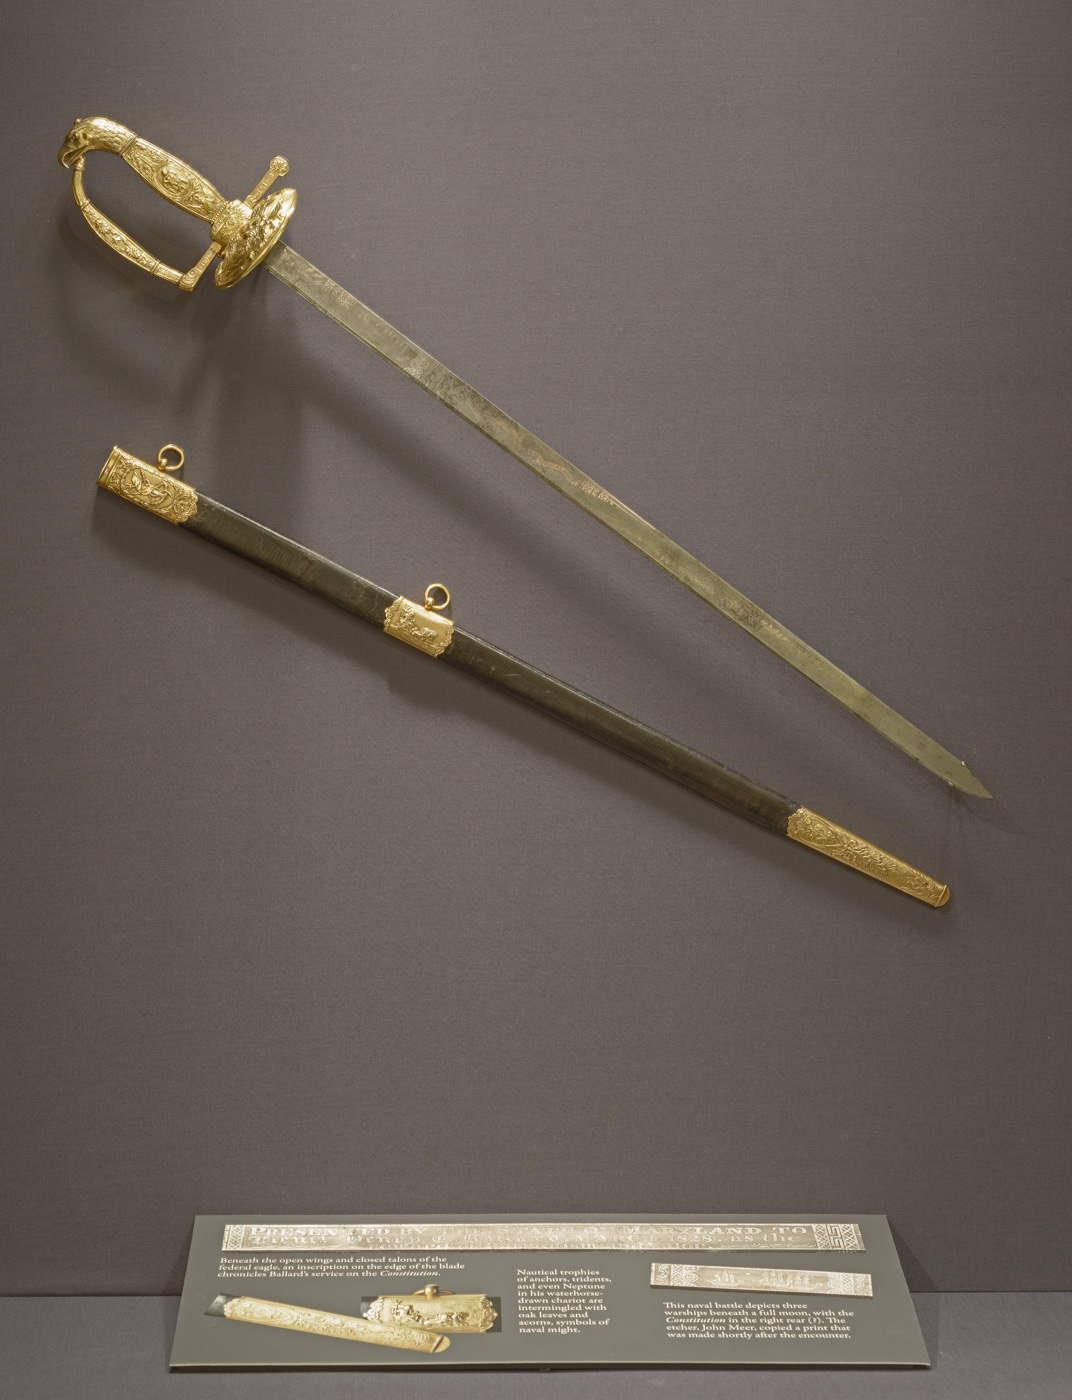 Sword and scabbard, Presented to Lieutenant Henry E. Ballard by the State of Maryland. Designed and made by Thomas Fletcher & Sidney Gardiner; blade makers: William Rose, Sr., and John Meer, Sr., Philadelphia, Pa.,1829. Gold, steel, wool, leather. Museum purchase with funds provided by the Henry Francis du Pont Collectors Circle 2015.4.1